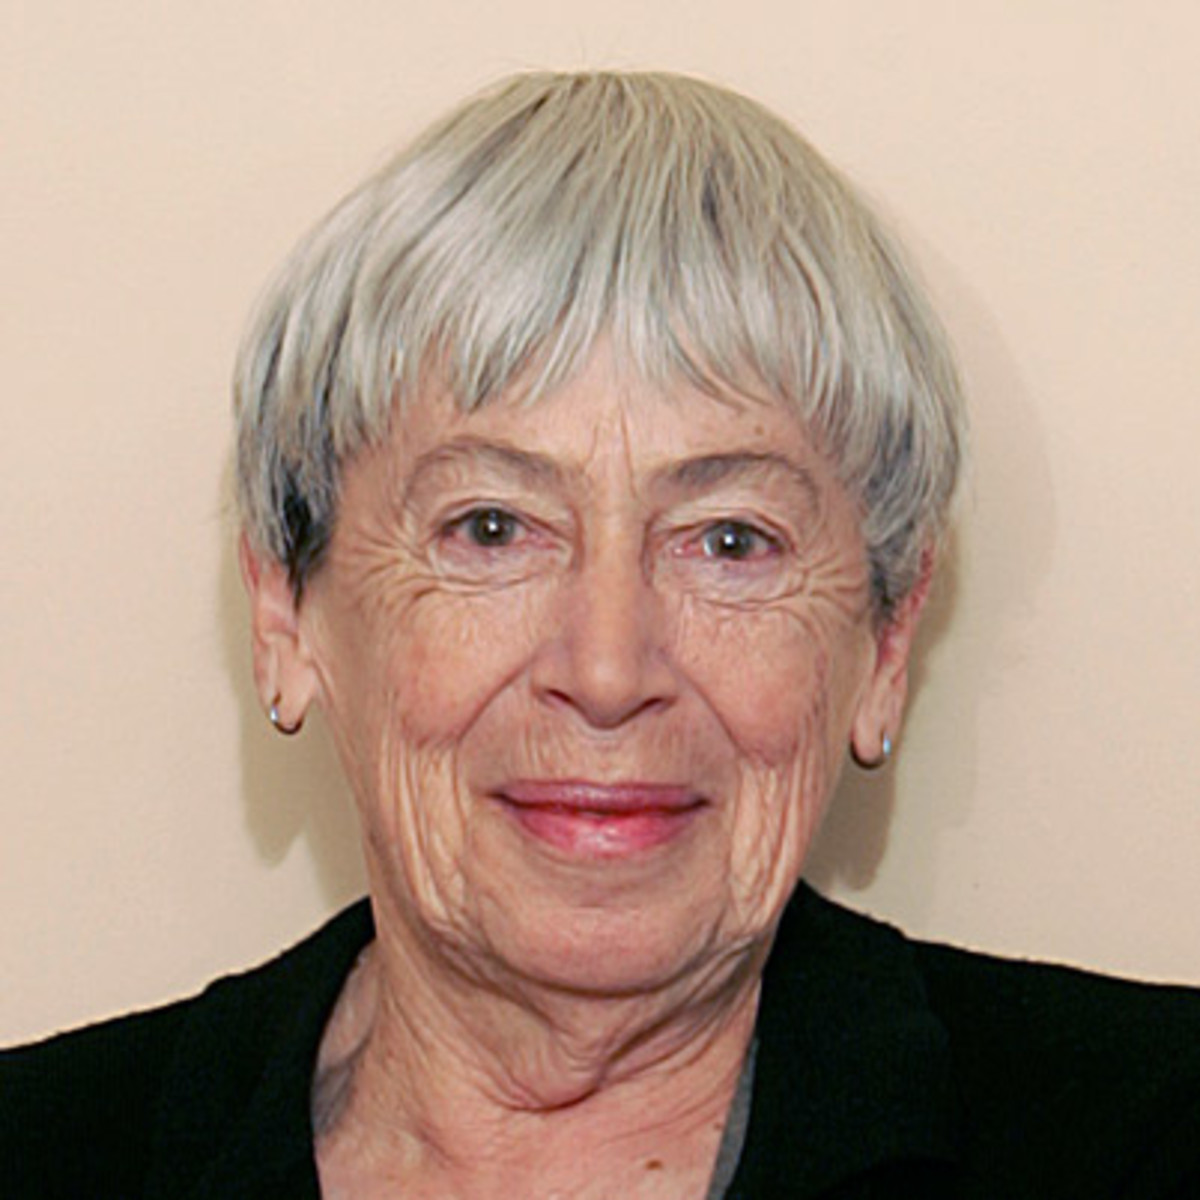 ursula k le guin essays Ursula k le guin she unnames them analysis essay can anyone help me with my personal statement for a head of.